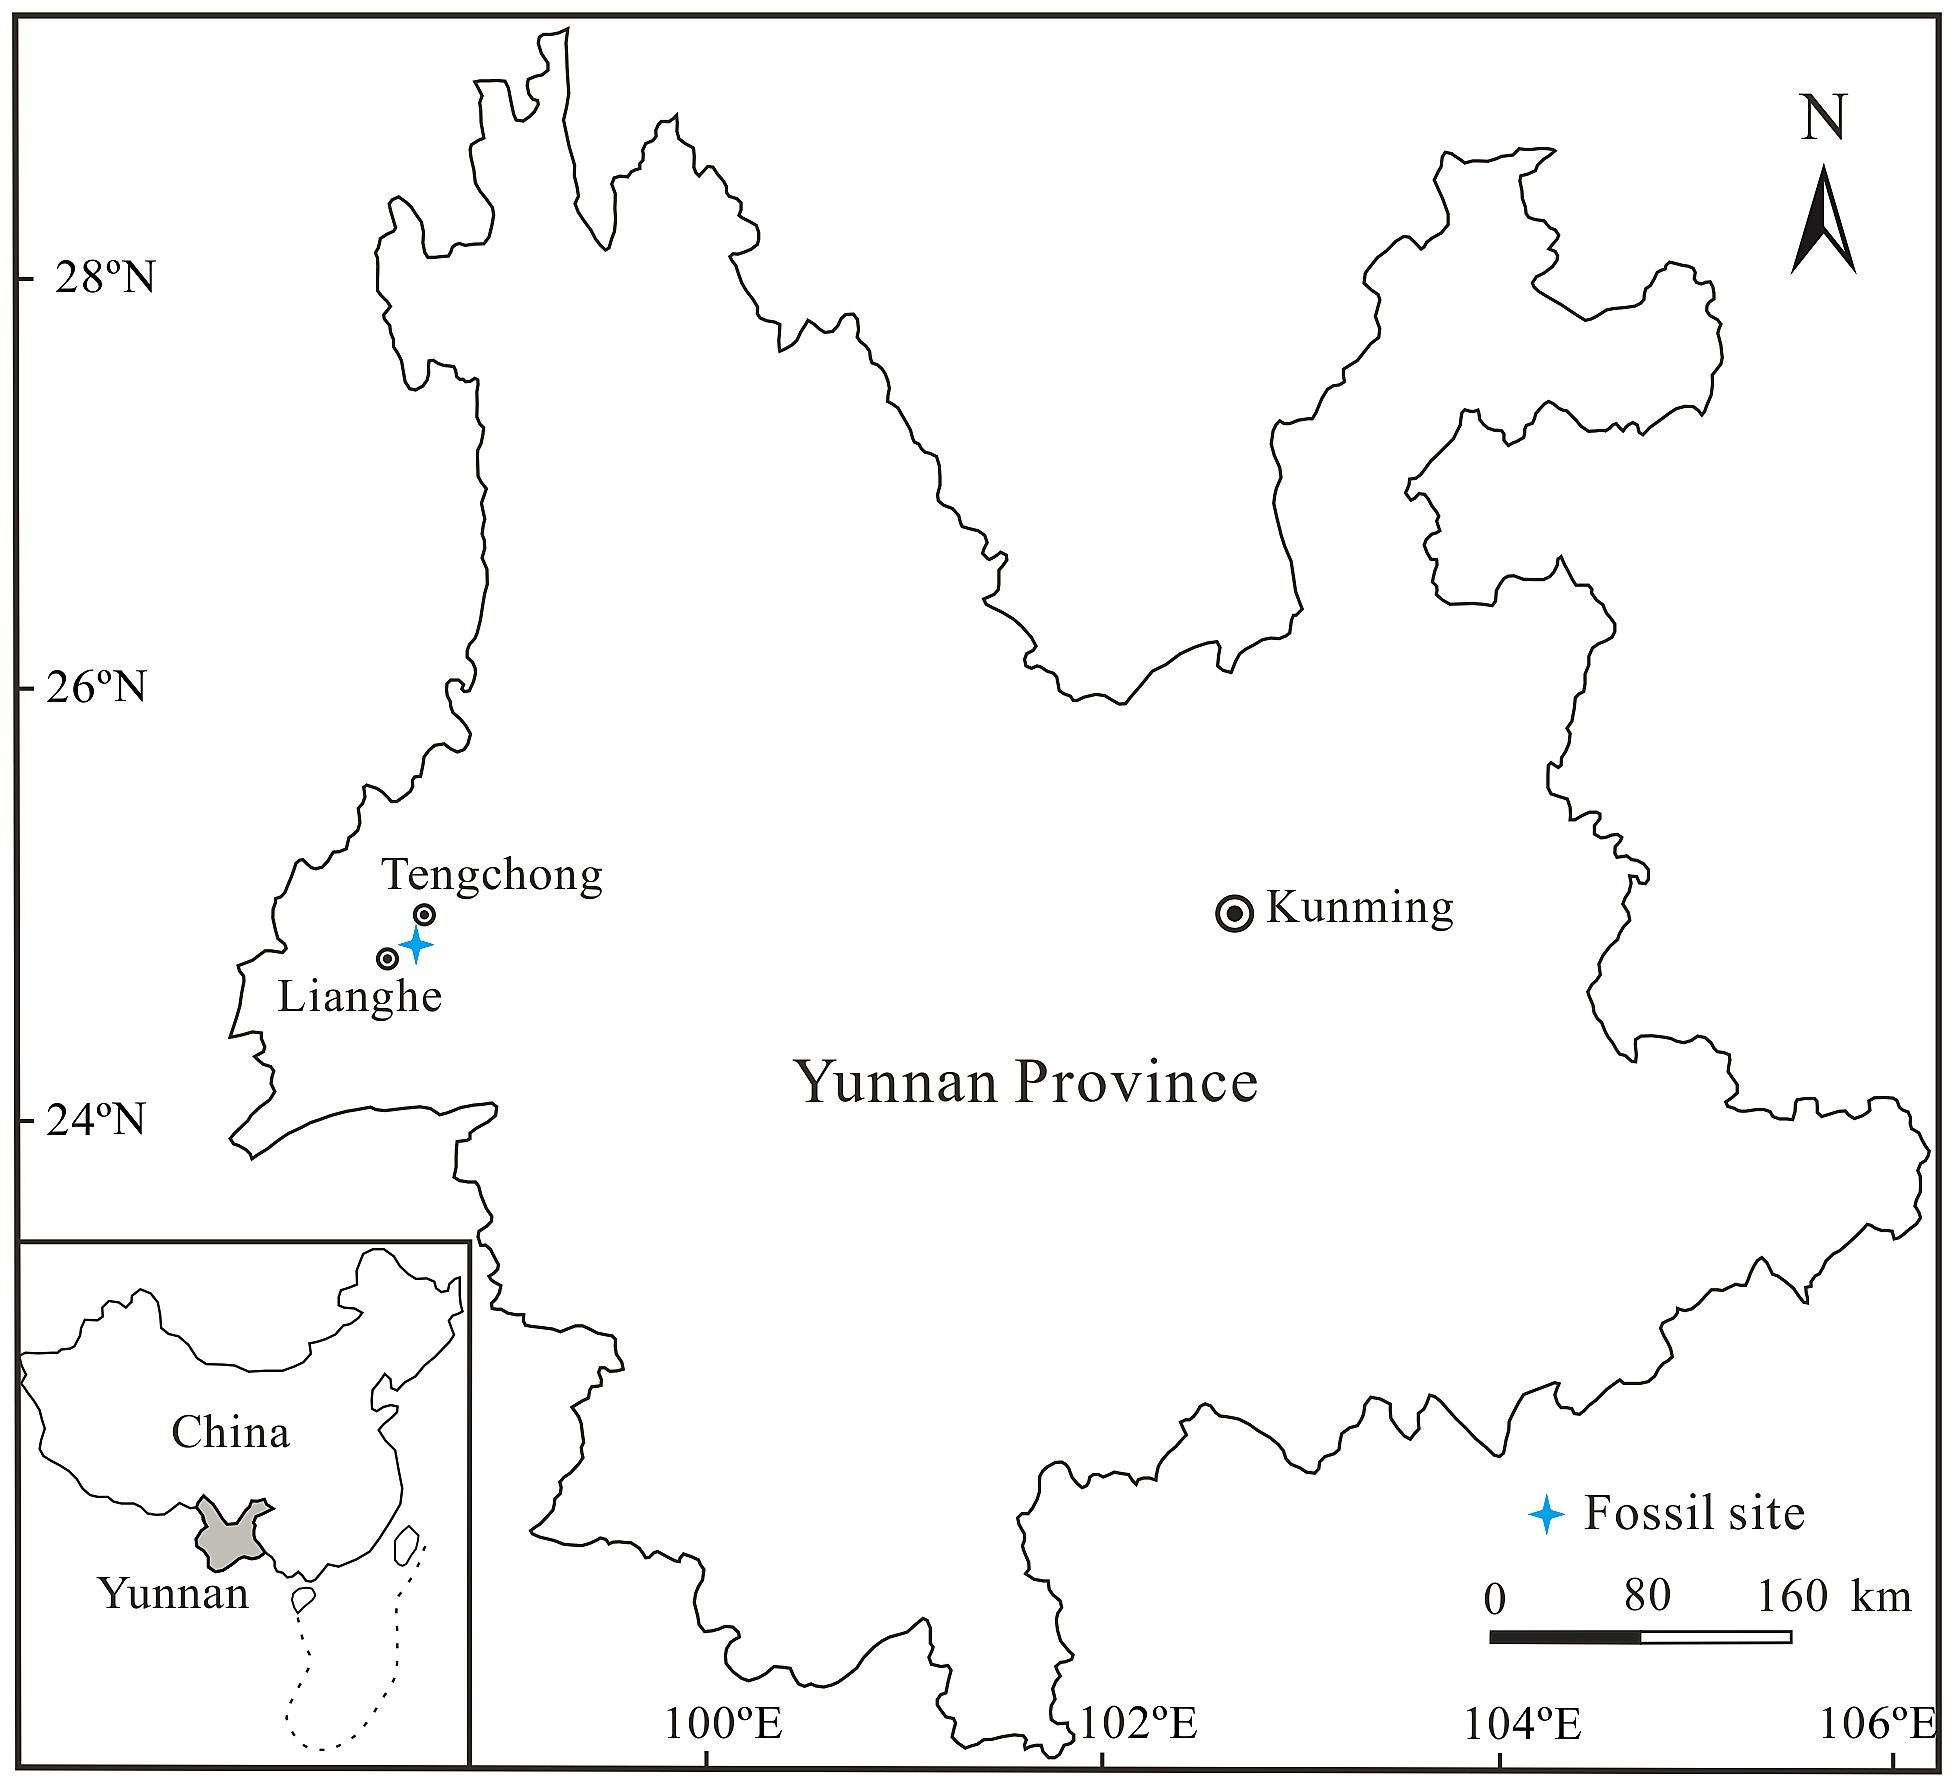 Simplified Geological Map Of The Fossil Site In Yunnan Province